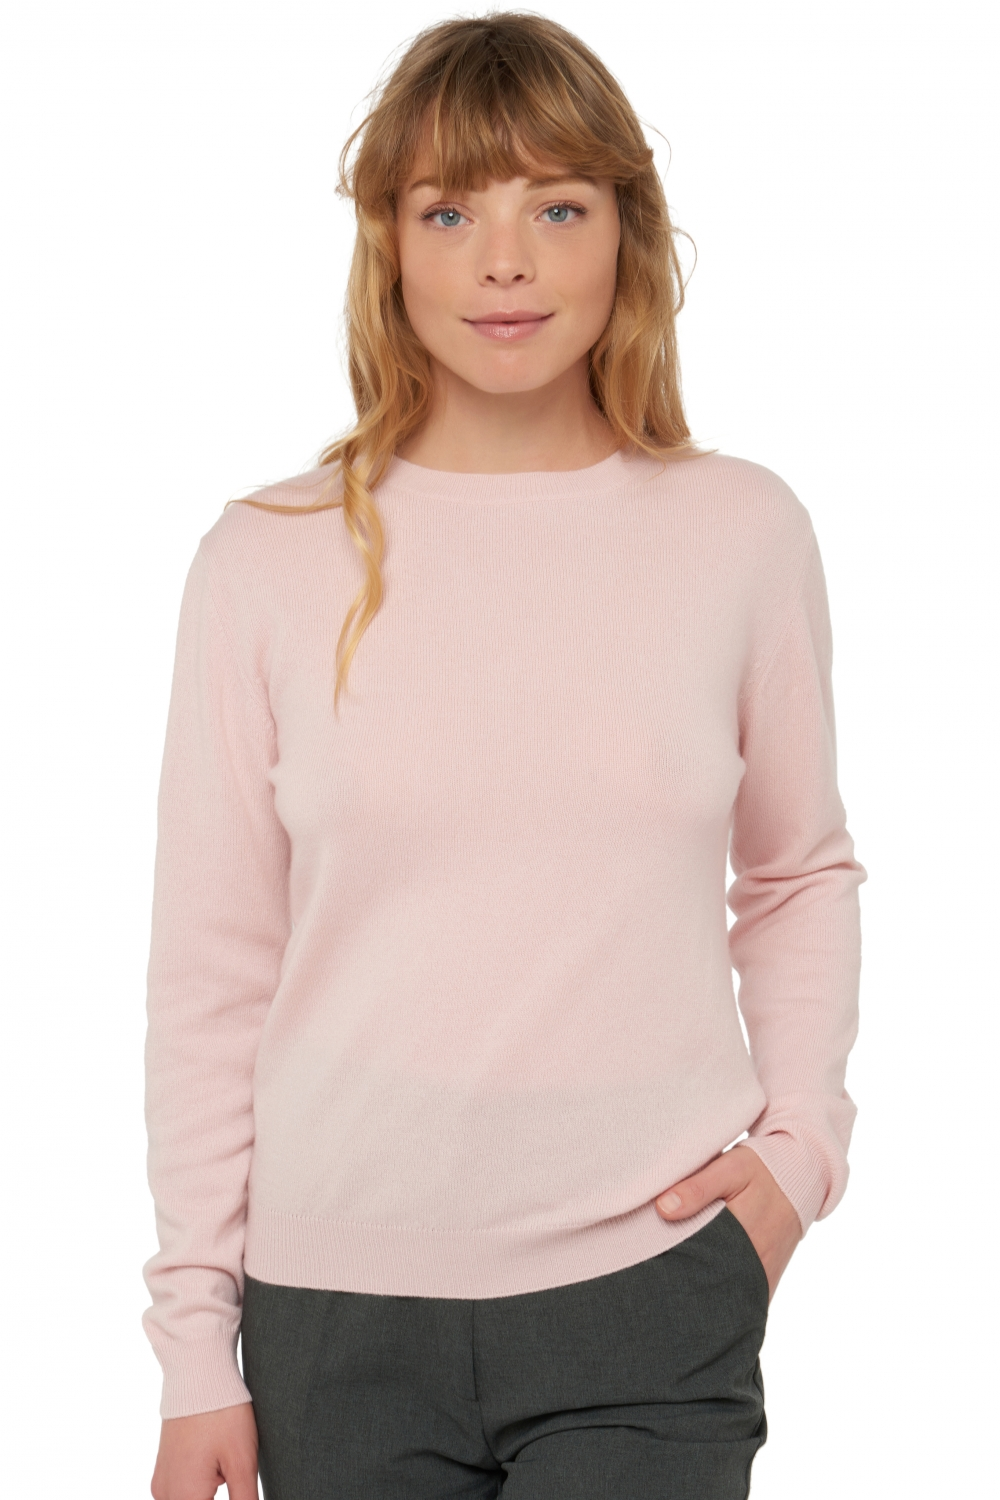 Cashmere ladies round necks raison shinking violet m